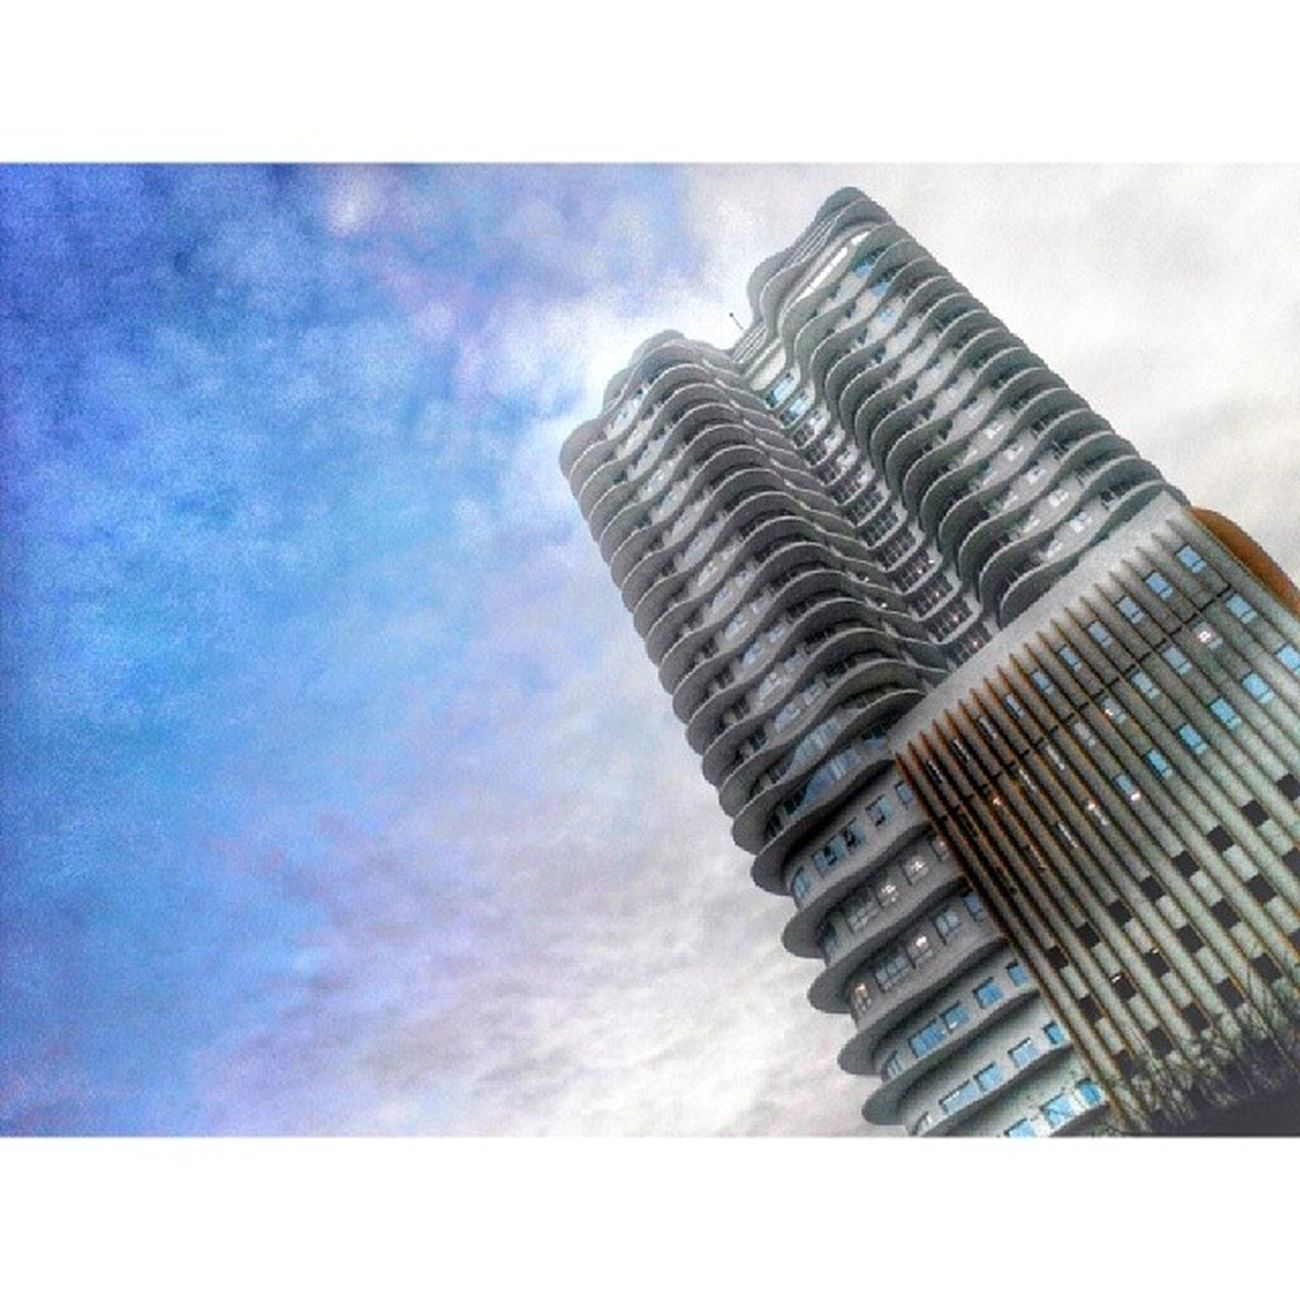 Rise up and shine! :D RiseUp Rise Soar Soarhigh building skyscraper clouds bliss calyx itpark love life passion igersPhilippines Cebu Pinoyiglove igdaily potd LenovoMobilePH fotodroids cool_capture latergram LitratongPinoy pinasshoutout snapseed seekers shooters